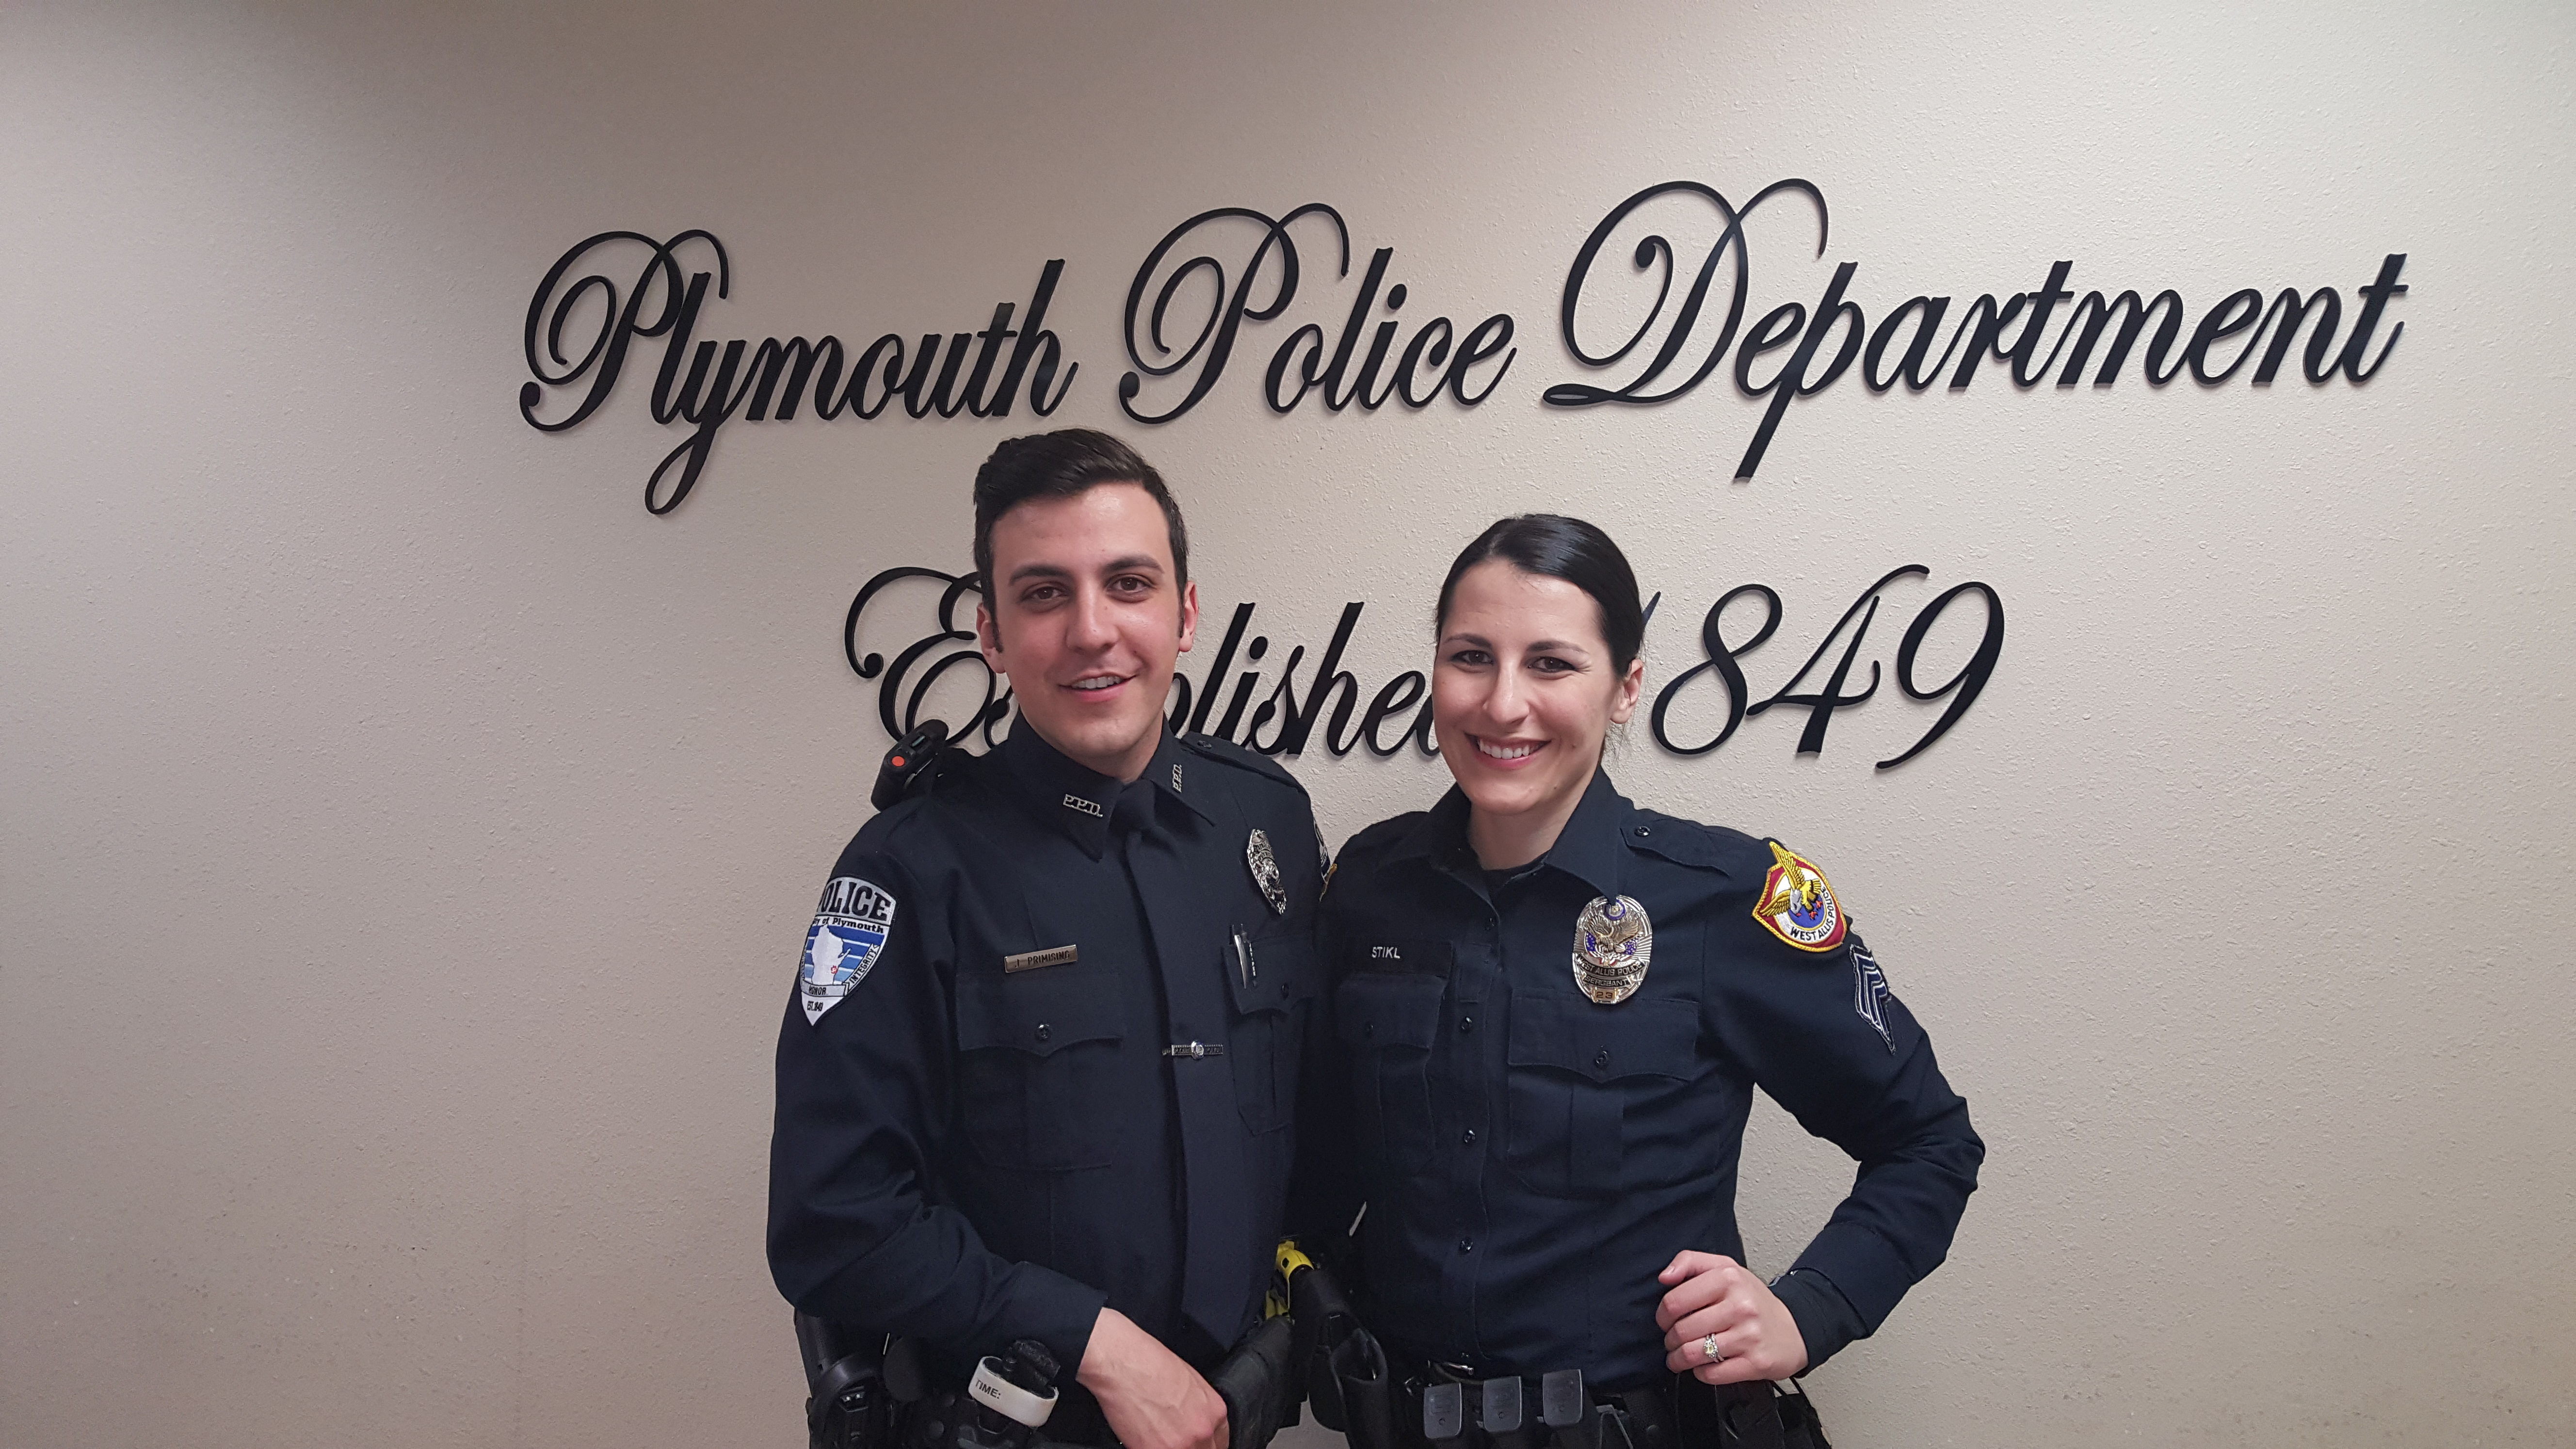 BIRKY SCHOLARSHIP RECIPIENT JOHN PRIMISING HIRED AT PLYMOUTH POLICE DEPARTMENT